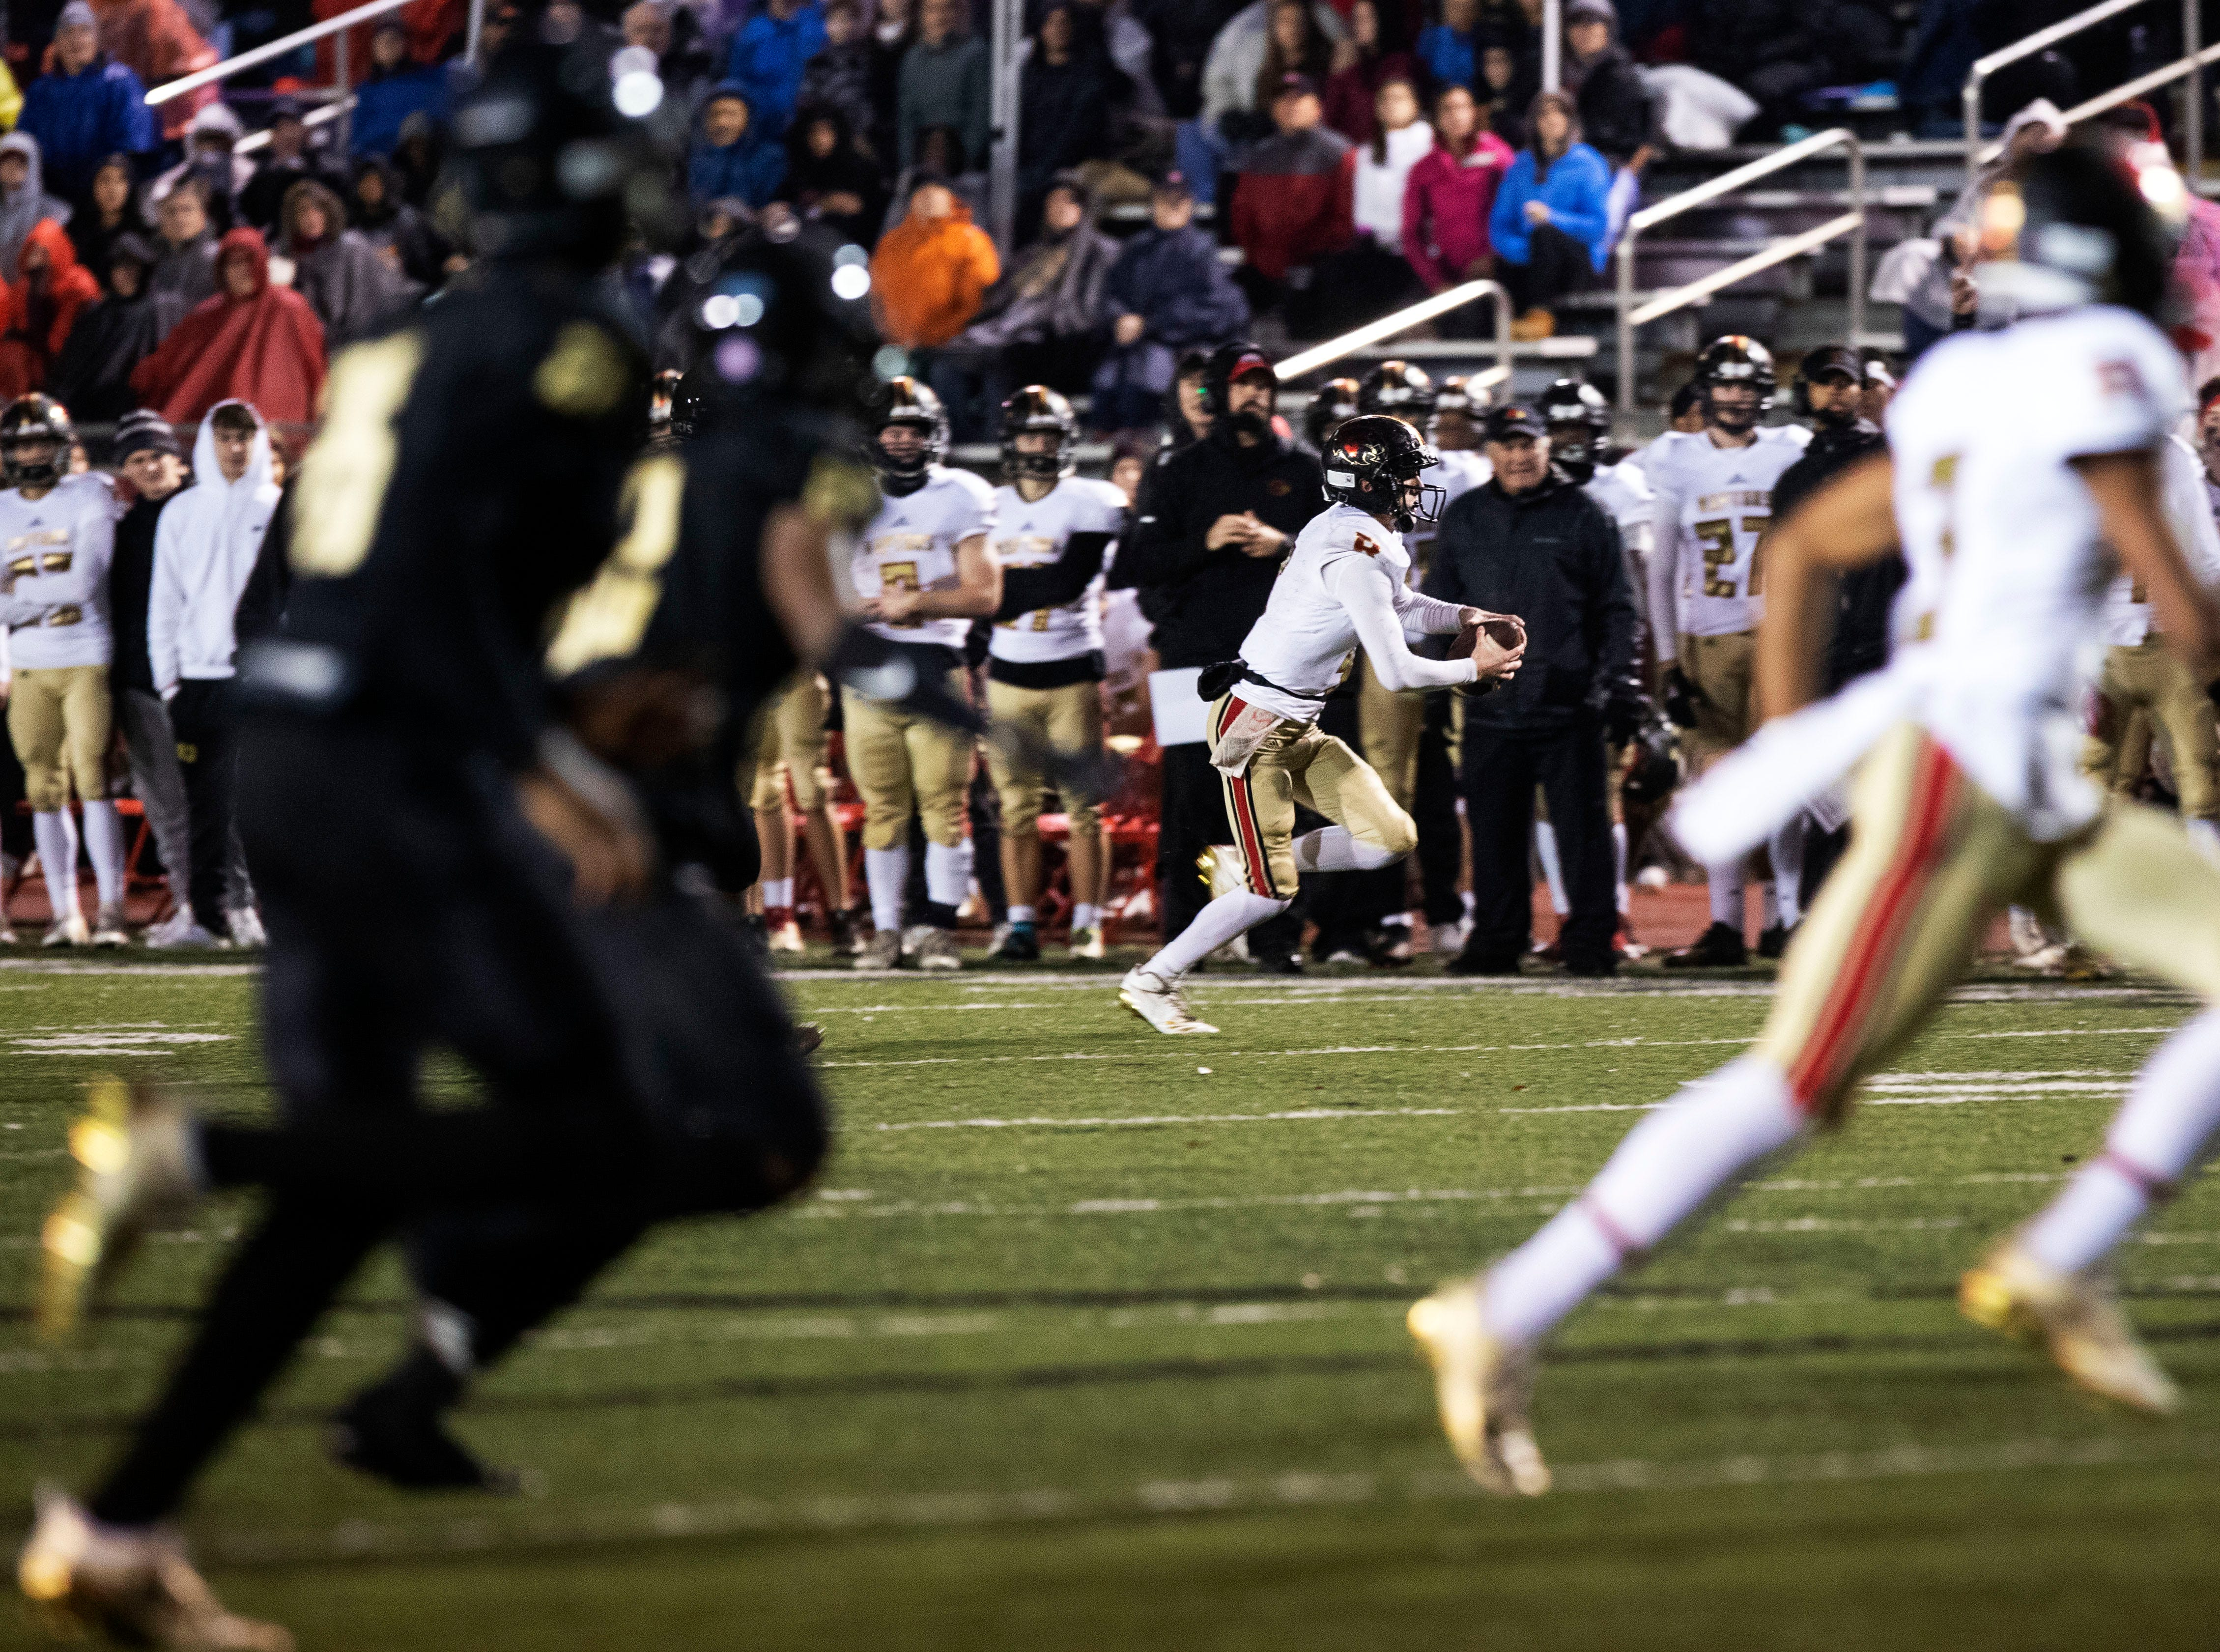 Ravenwood Raptors quarterback Brian Garcia (4)  runs out of bounds against Whitehaven Tigers defenders during the first half of an high school playoff football game, Friday, Nov. 23, 2018.